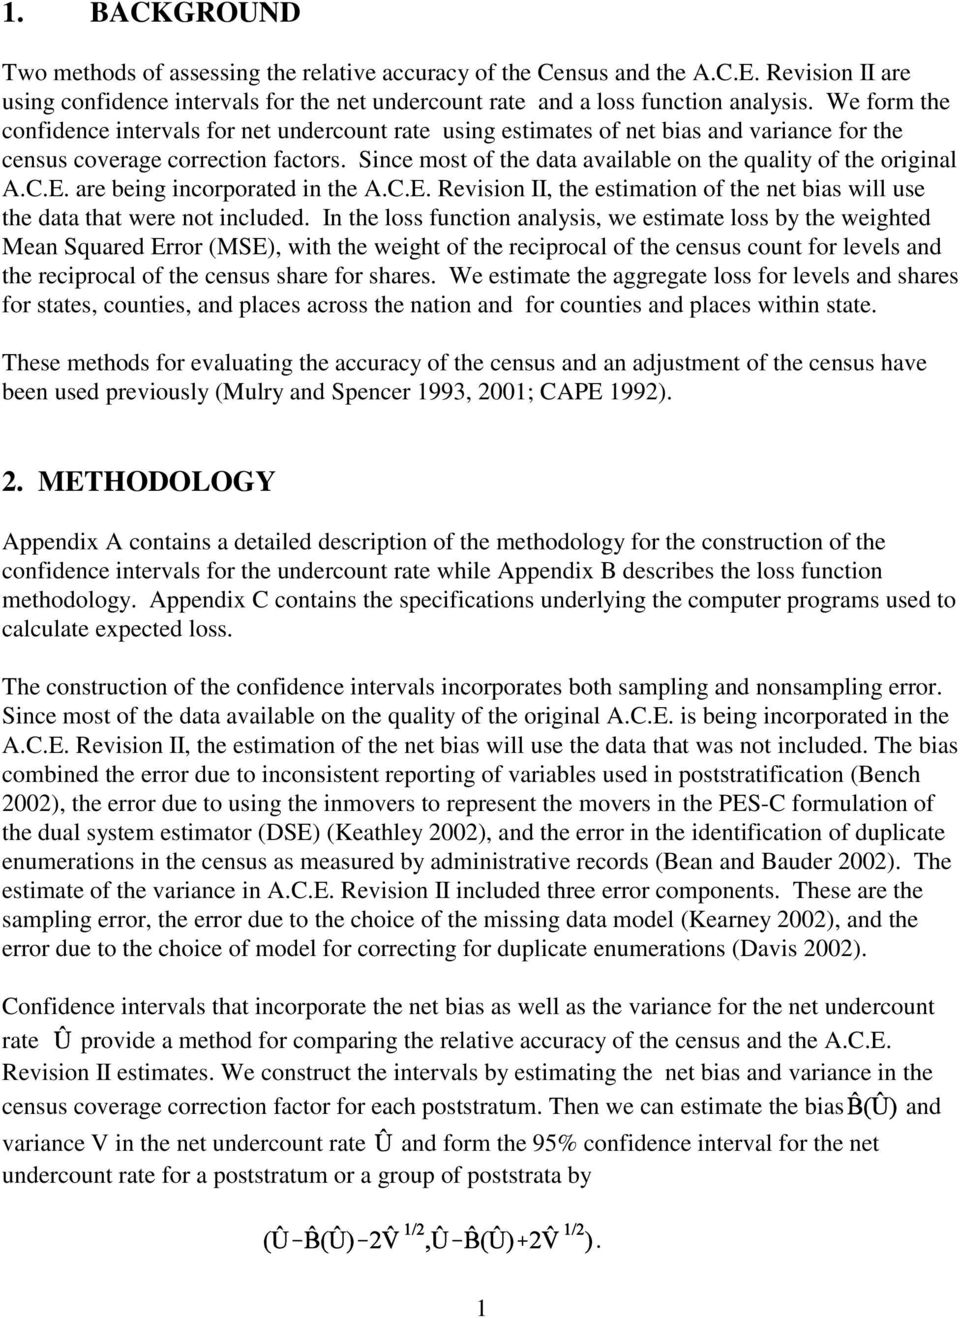 Since most of the data available on the quality of the original A.C.E. are being incorporated in the A.C.E. Revision II, the estimation of the net bias will use the data that were not included.